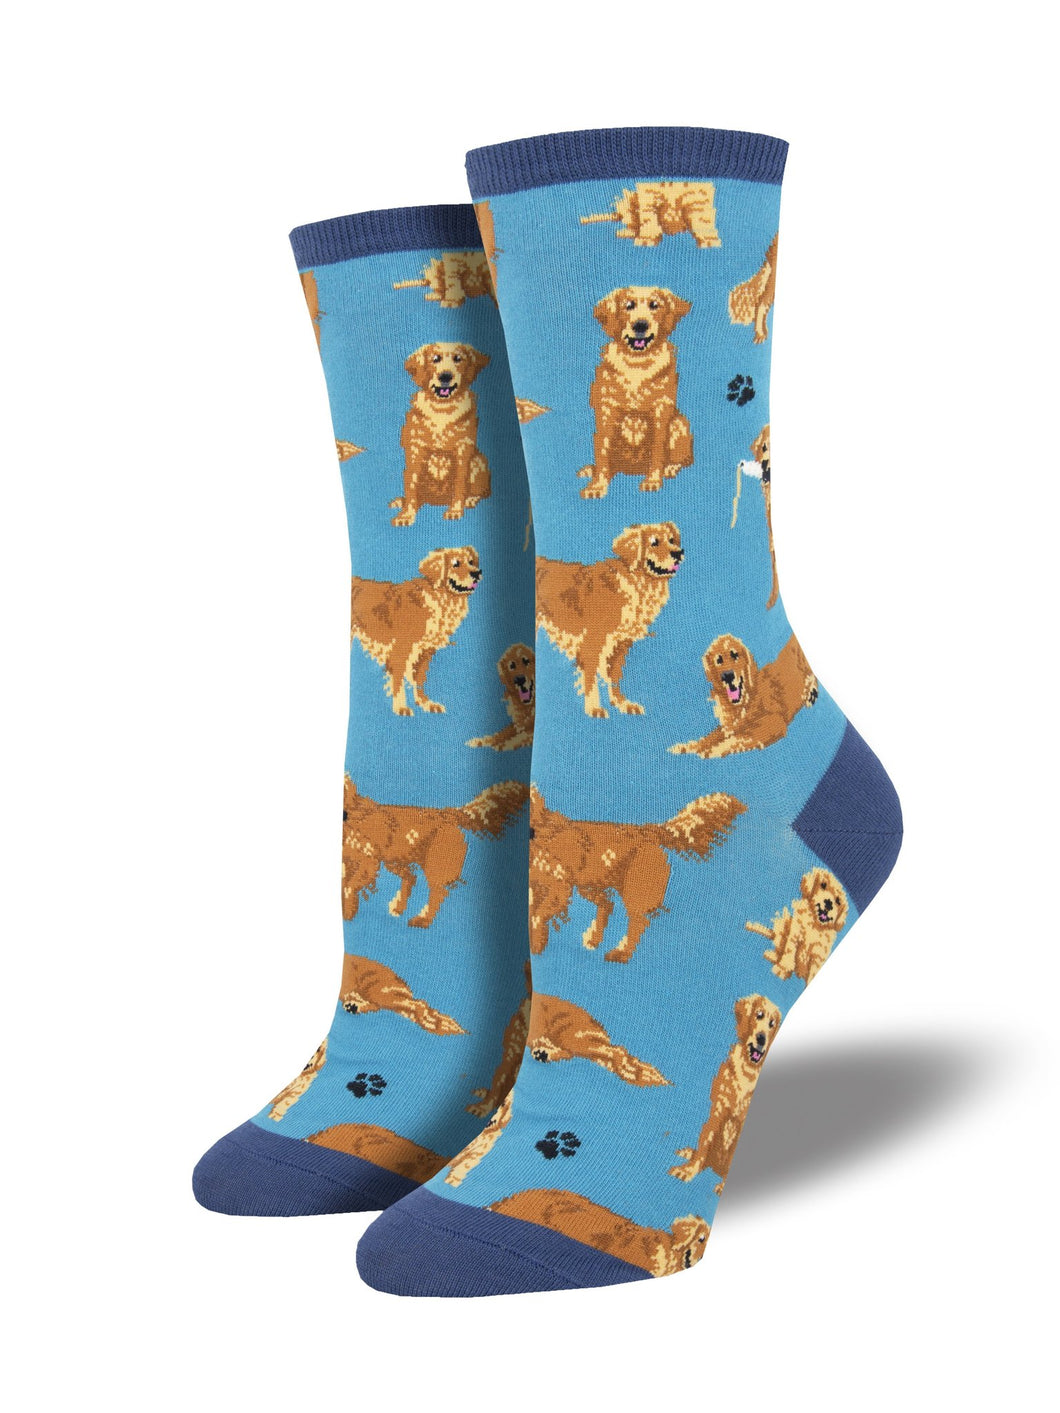 Women's Golden Retriever Socks - Blue